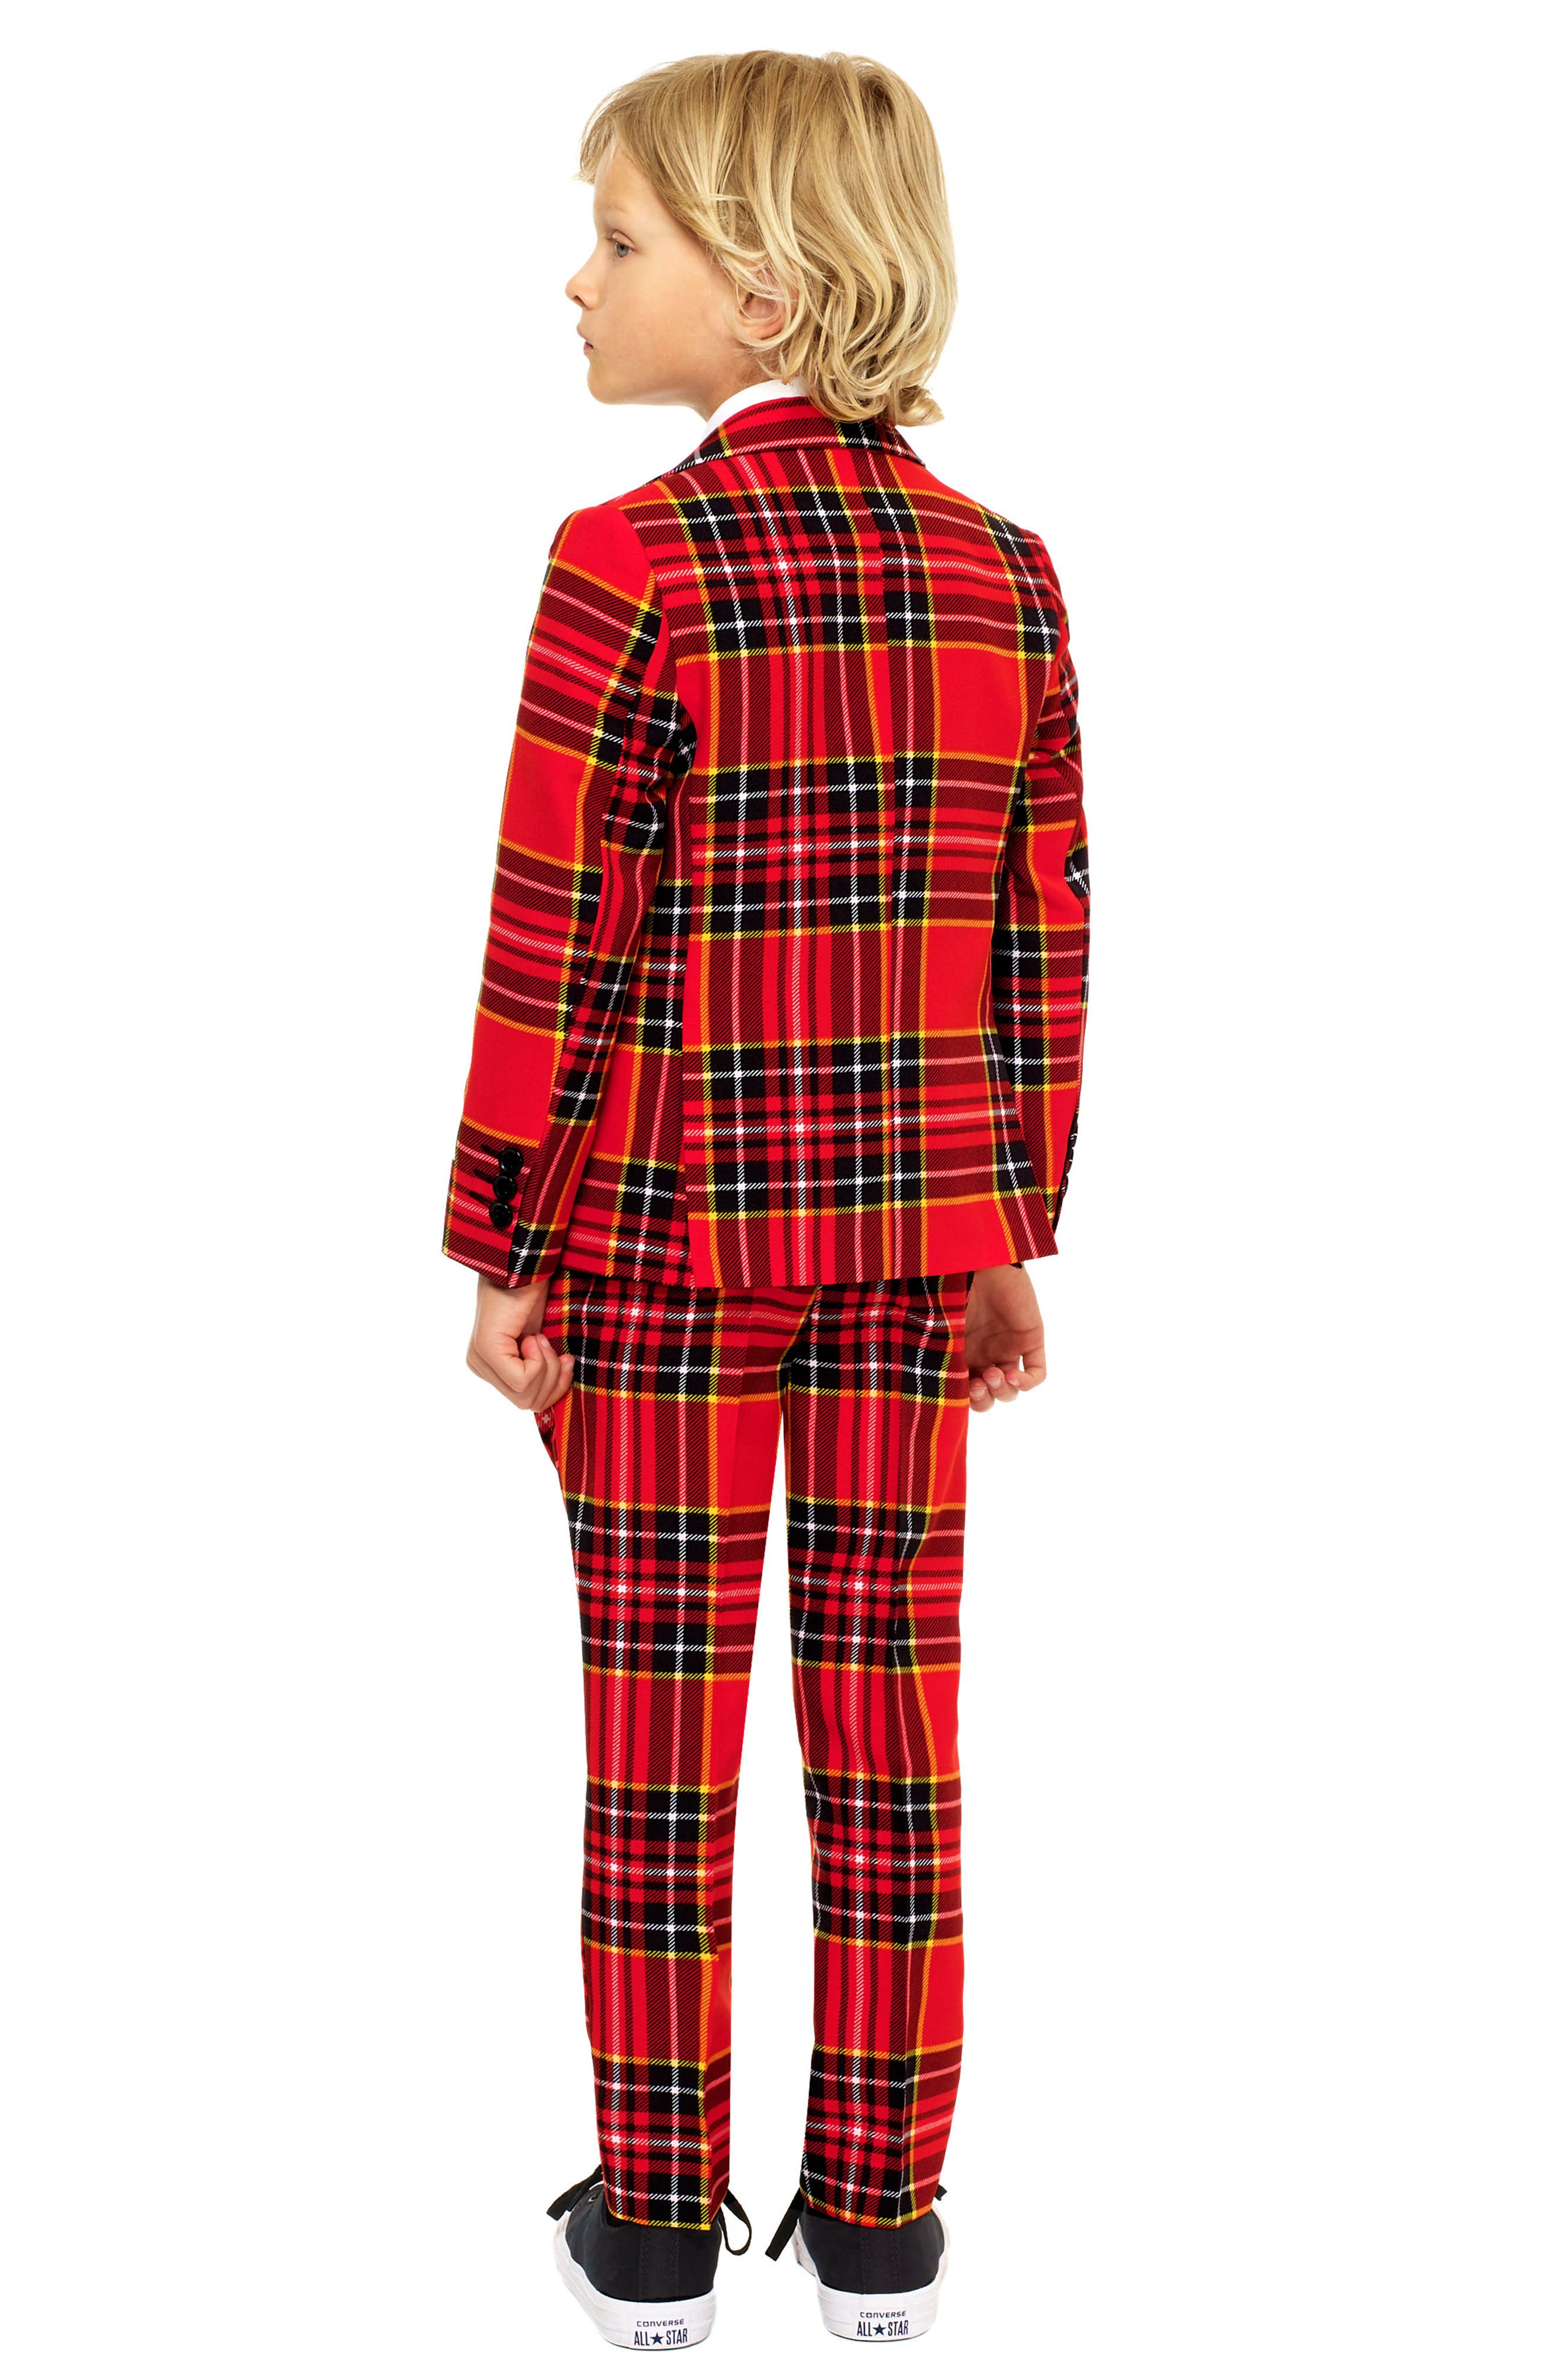 Alternate Image 2  - Oppo Lumberjack Two-Piece Suit with Tie (Toddler Boys, Little Boys & Big Boys)